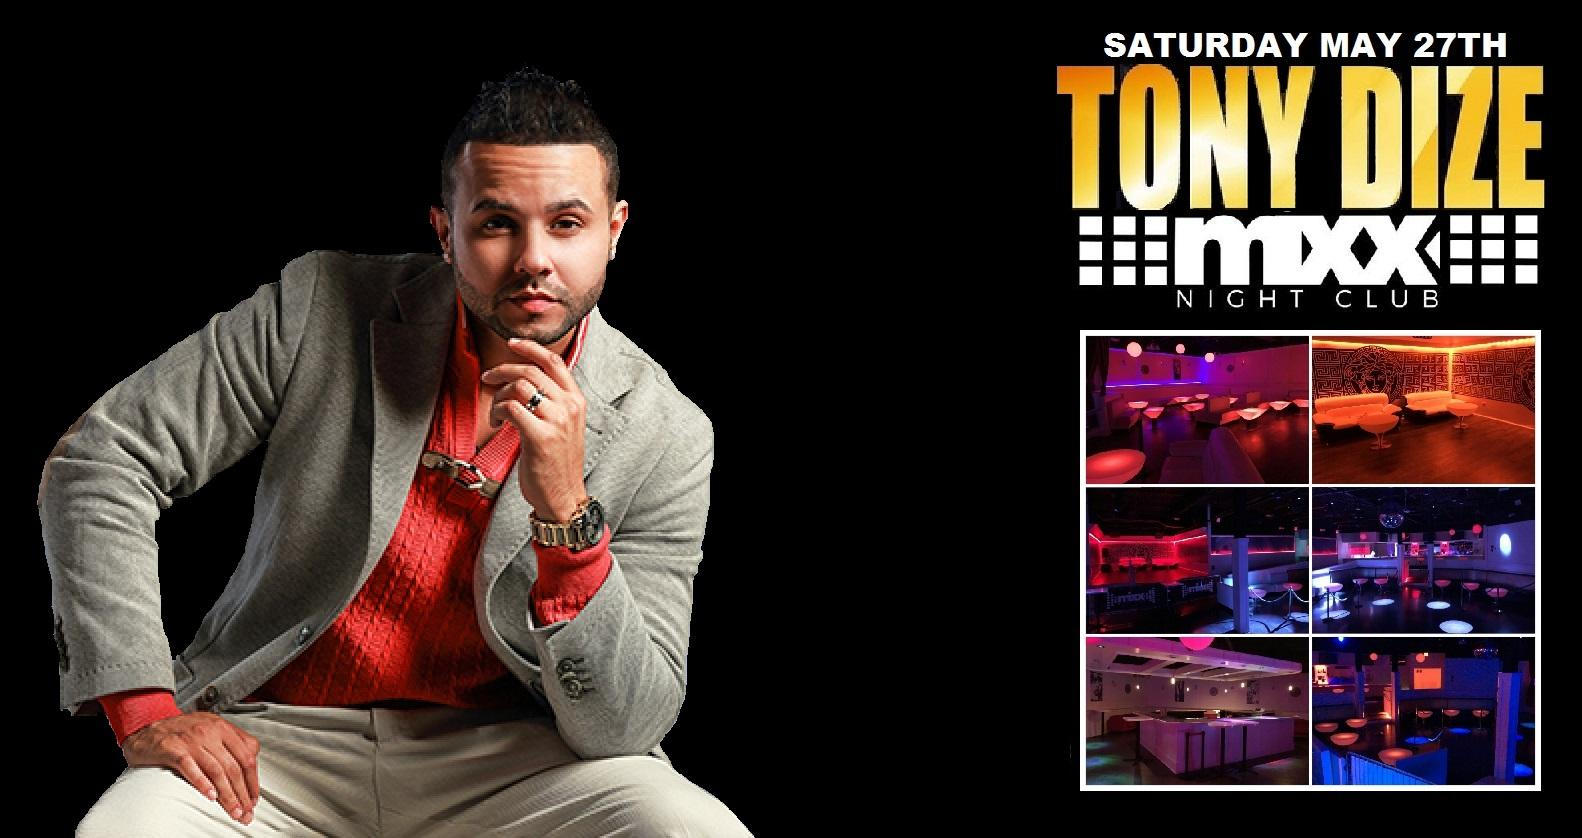 Tony Dize performing live this Saturday May 2